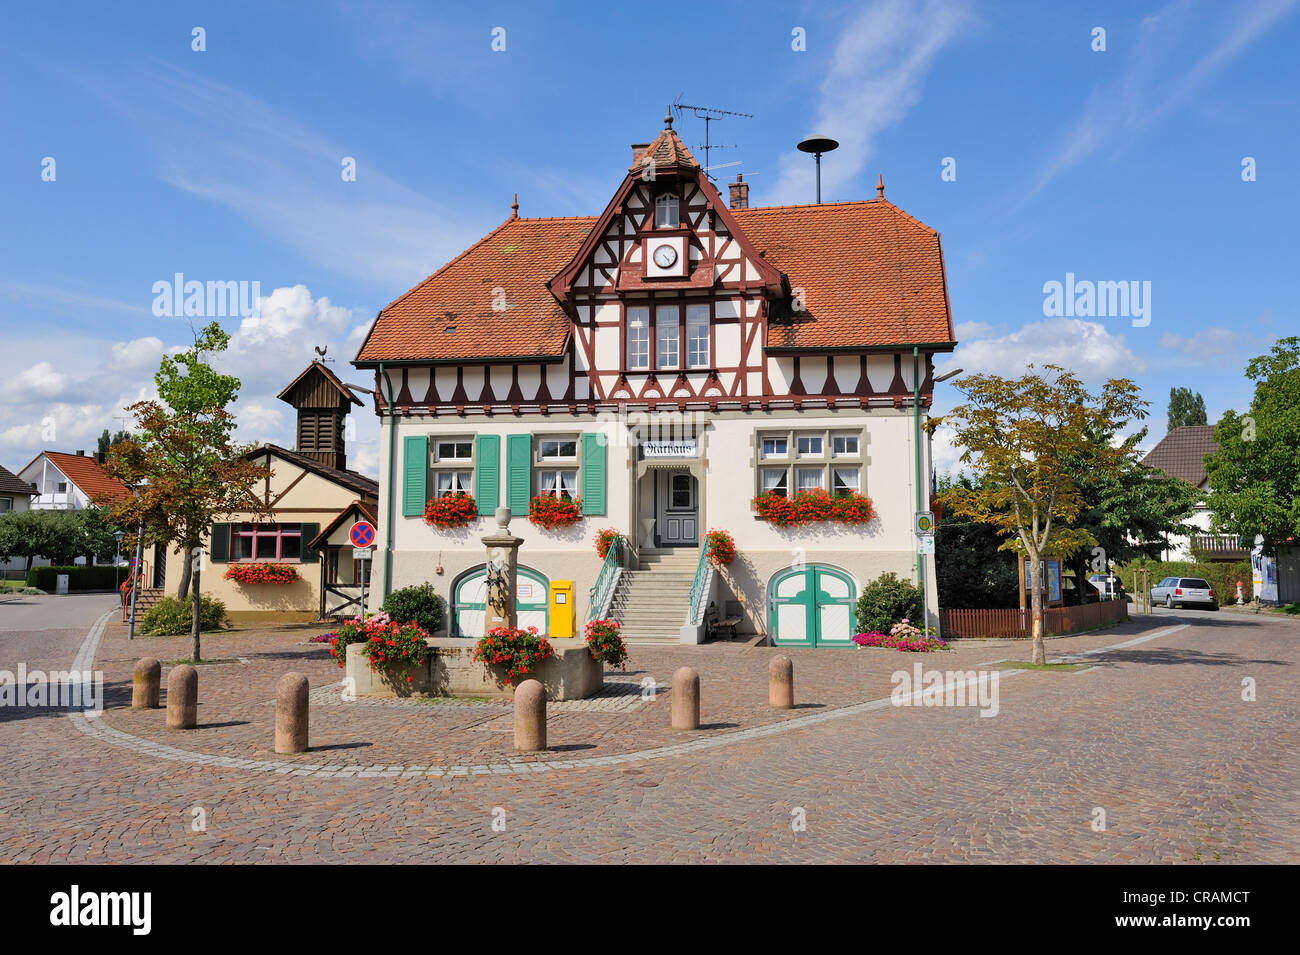 The historic town hall in Iznang, Landkreis Konstanz county, Baden-Wuerttemberg, Germany, Europe - Stock Image